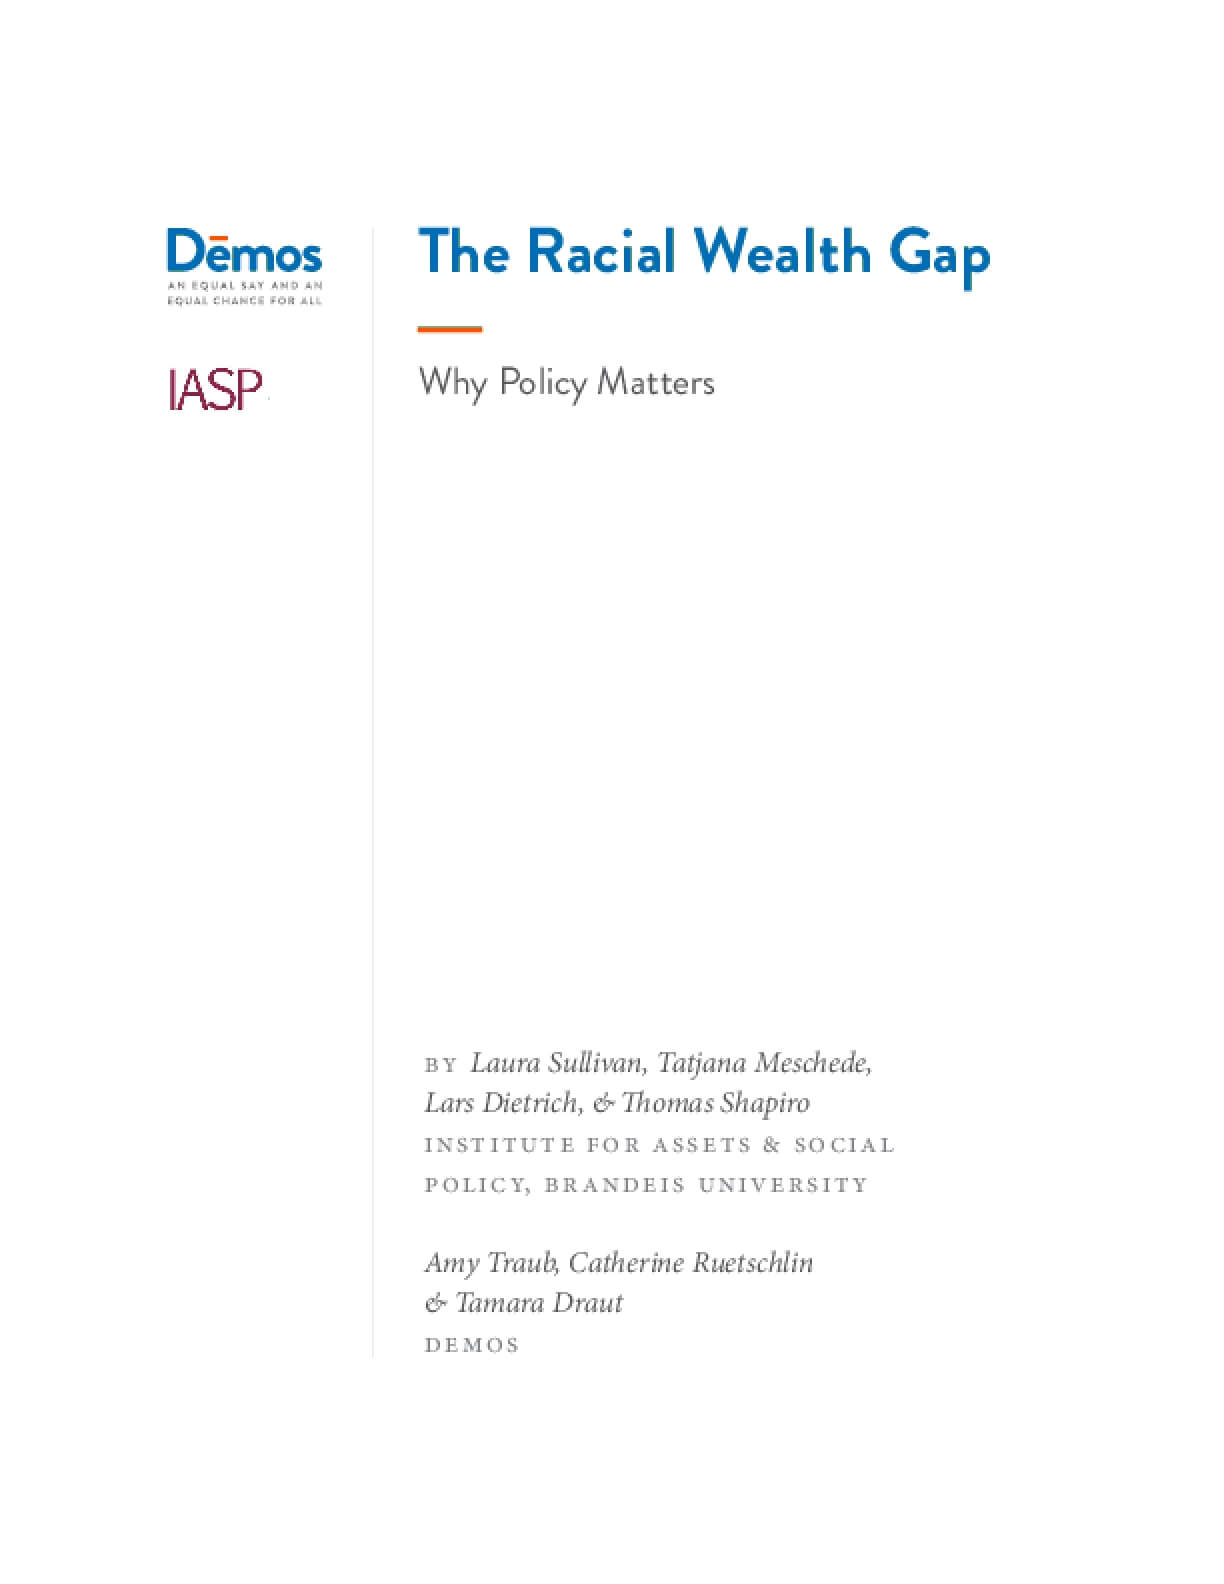 The Racial Wealth Gap: Why Policy Matters